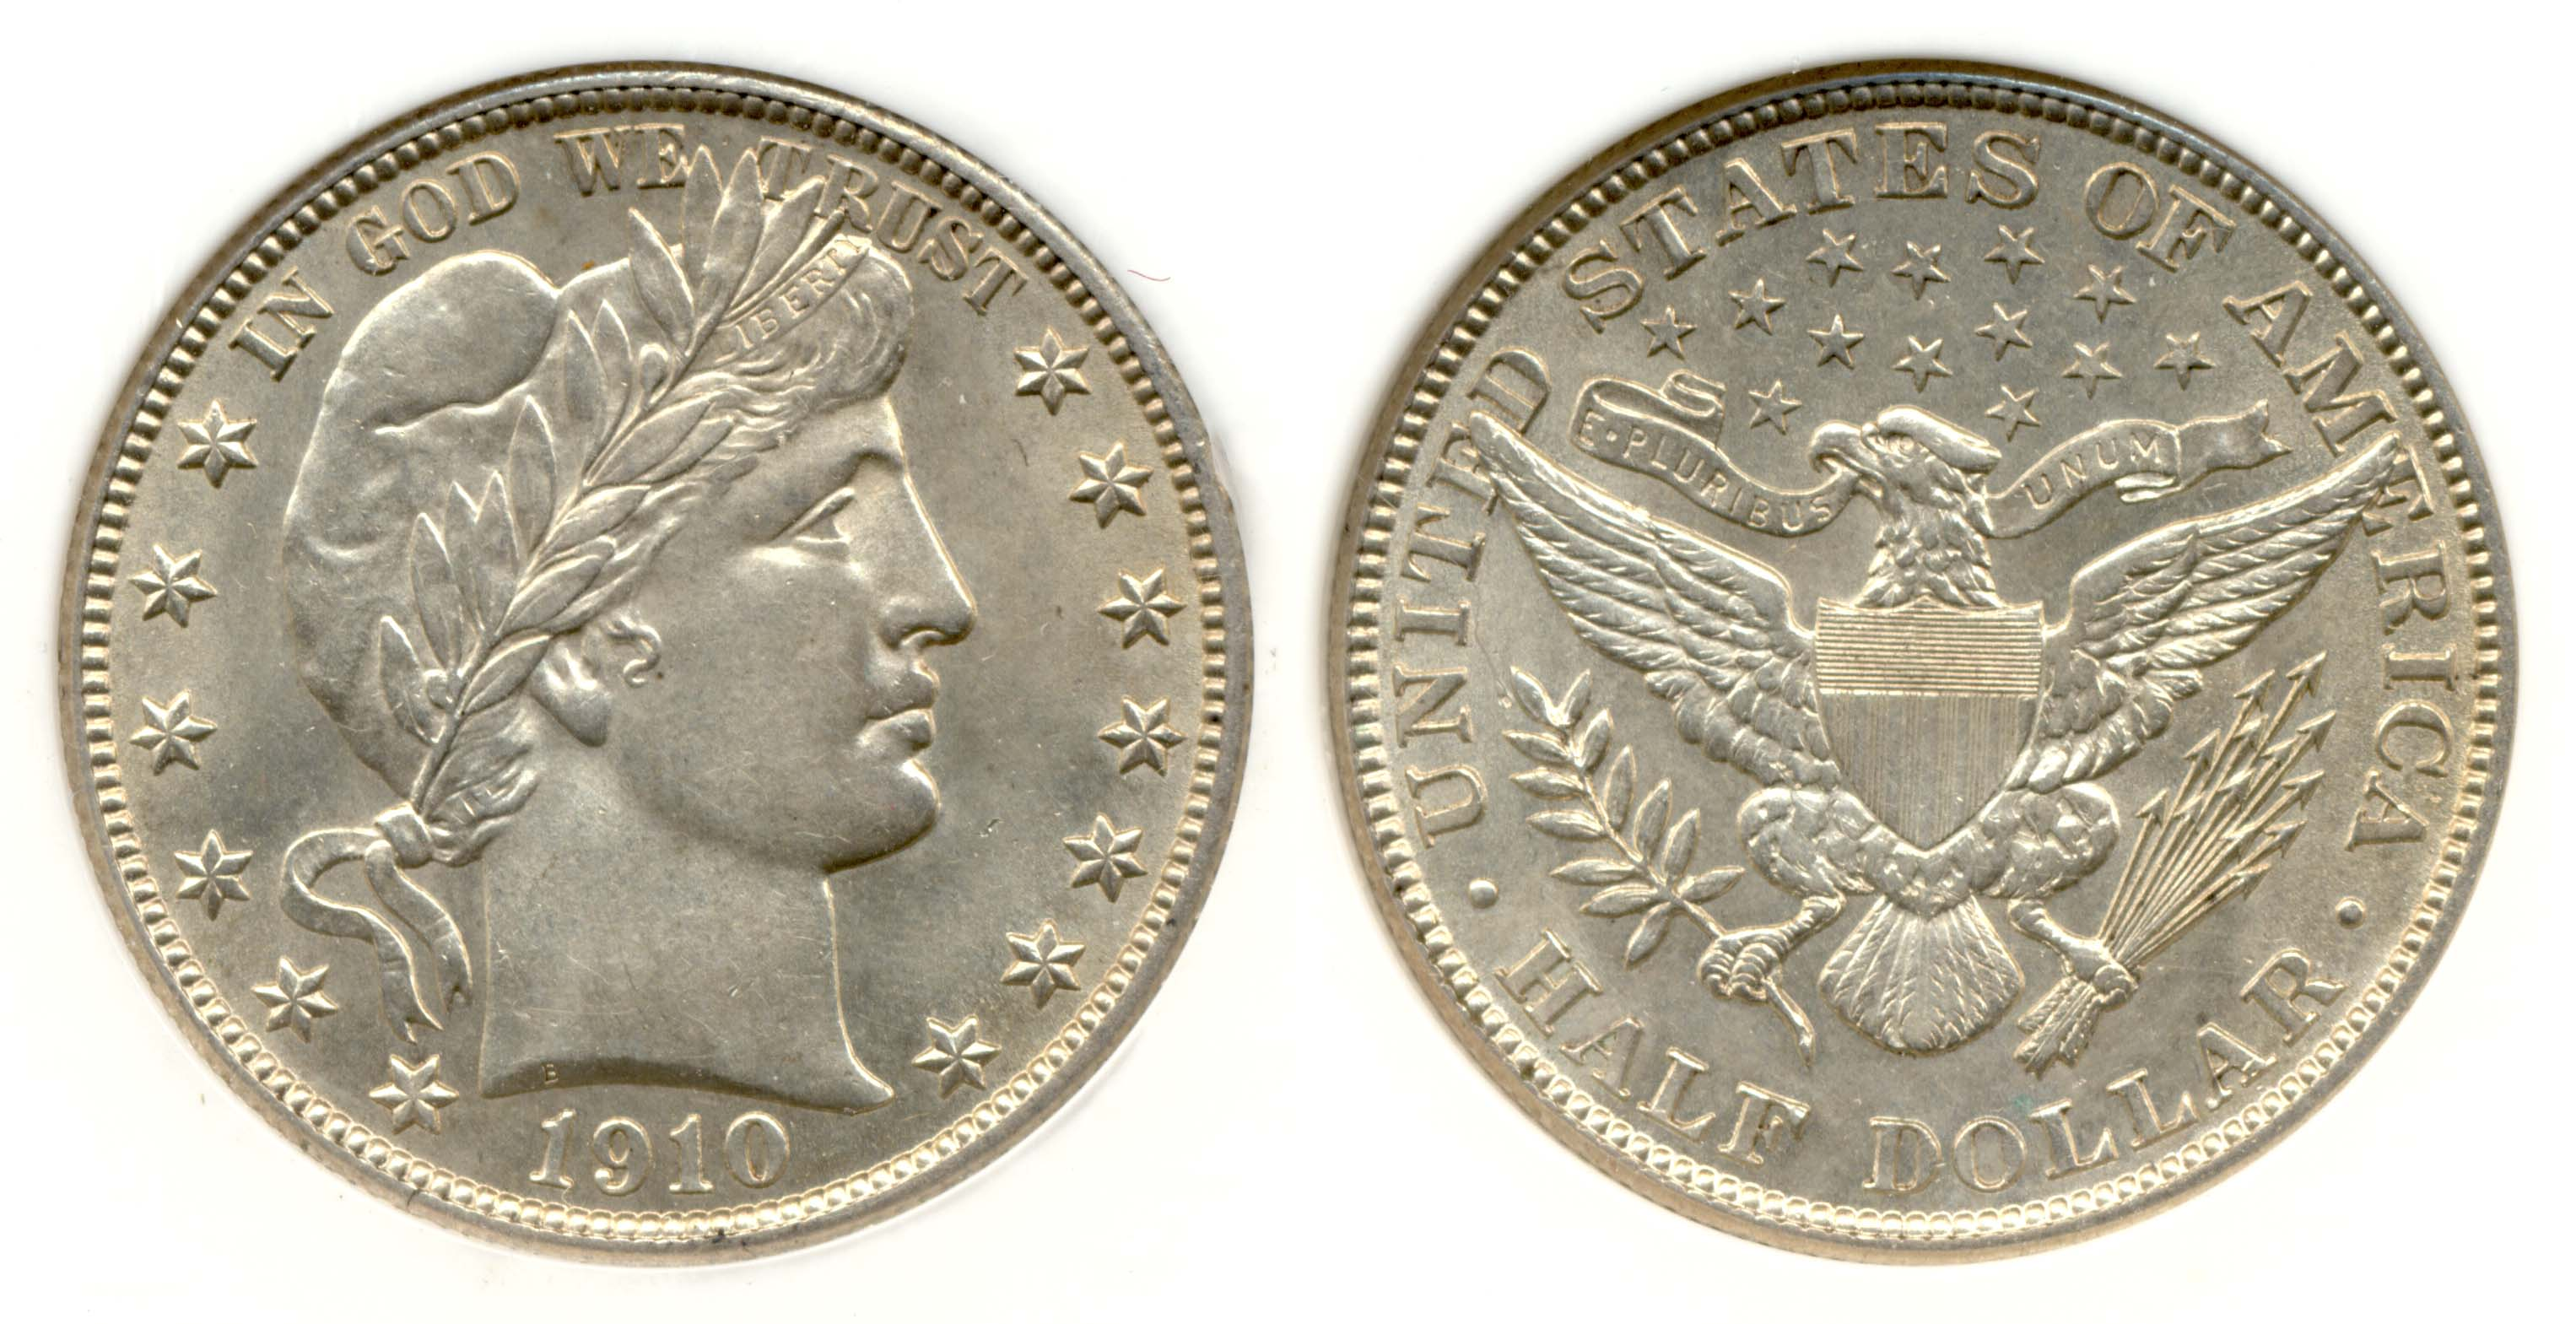 1910 Barber Half Dollar PCI MS-64